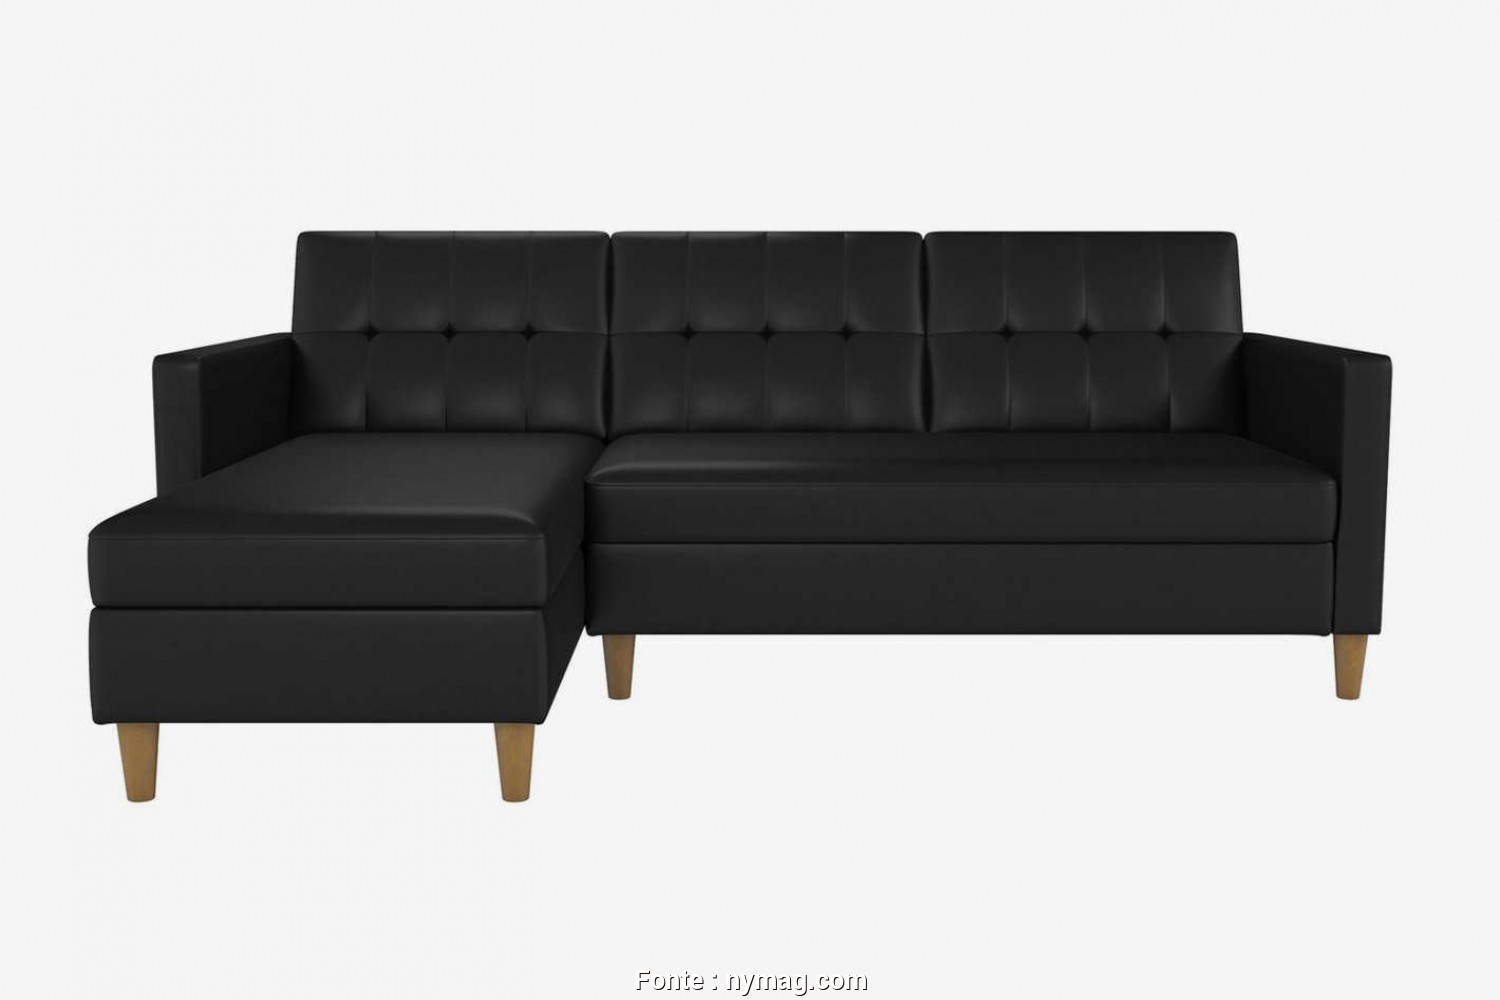 Futon Convertible 1 Place Ikea, Divertente Stigall Reversible Sleeper Sectional